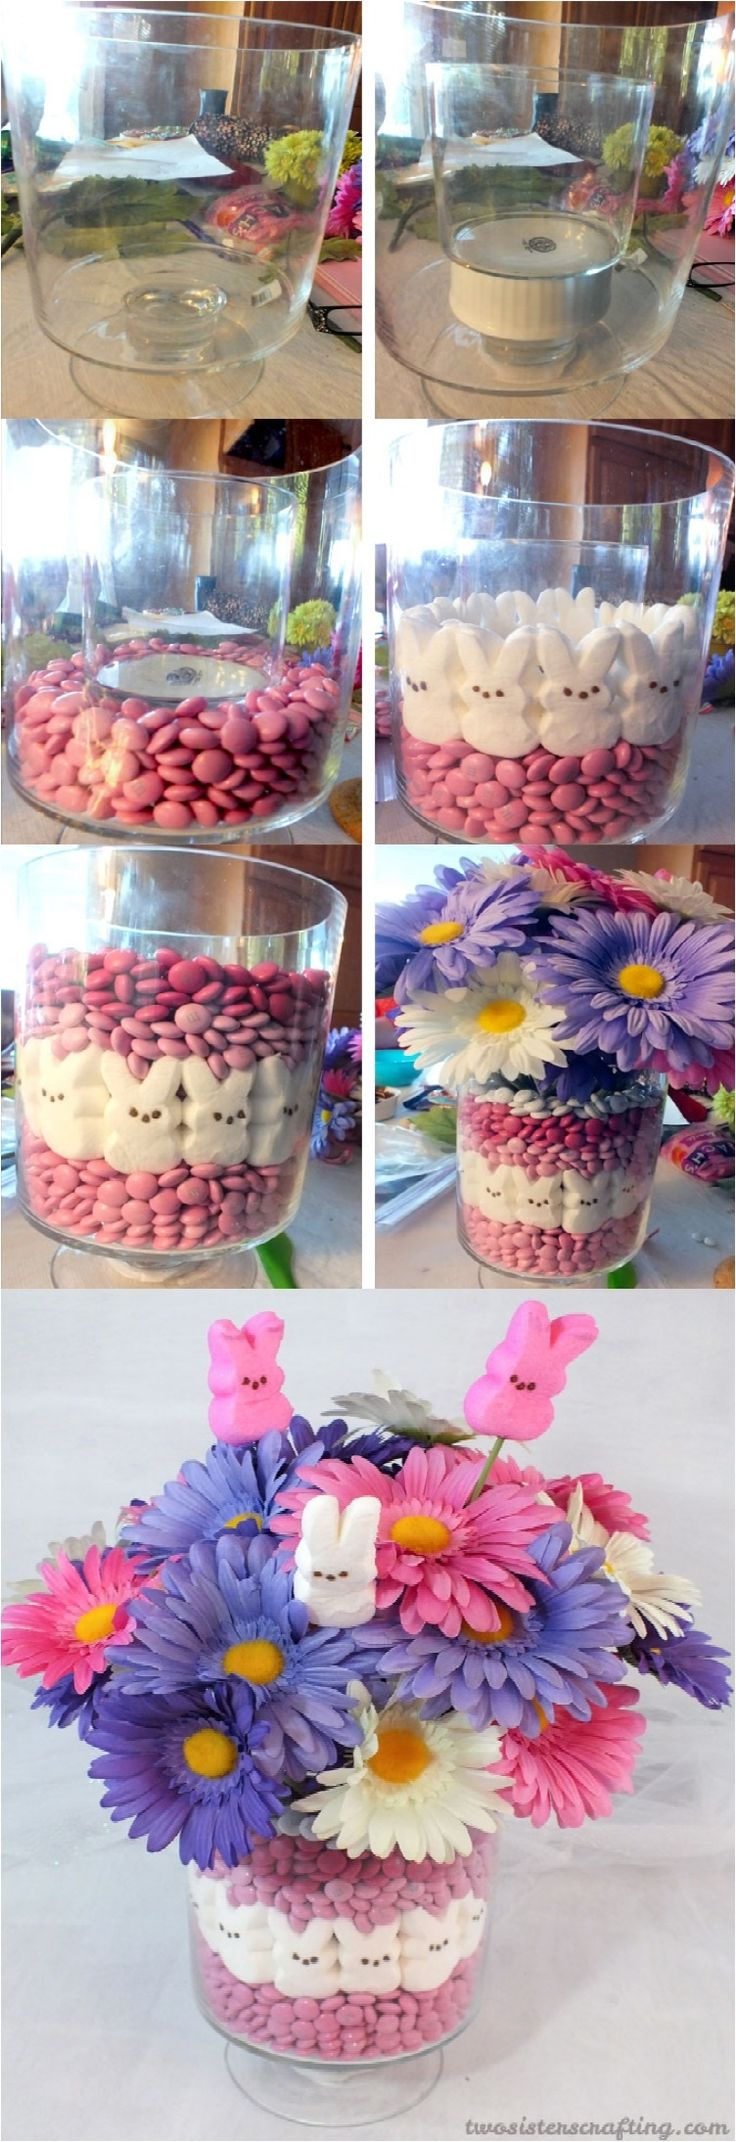 Diy table decorations for baby shower - 18 Diy Easter Centerpieces To Adorn Your Table